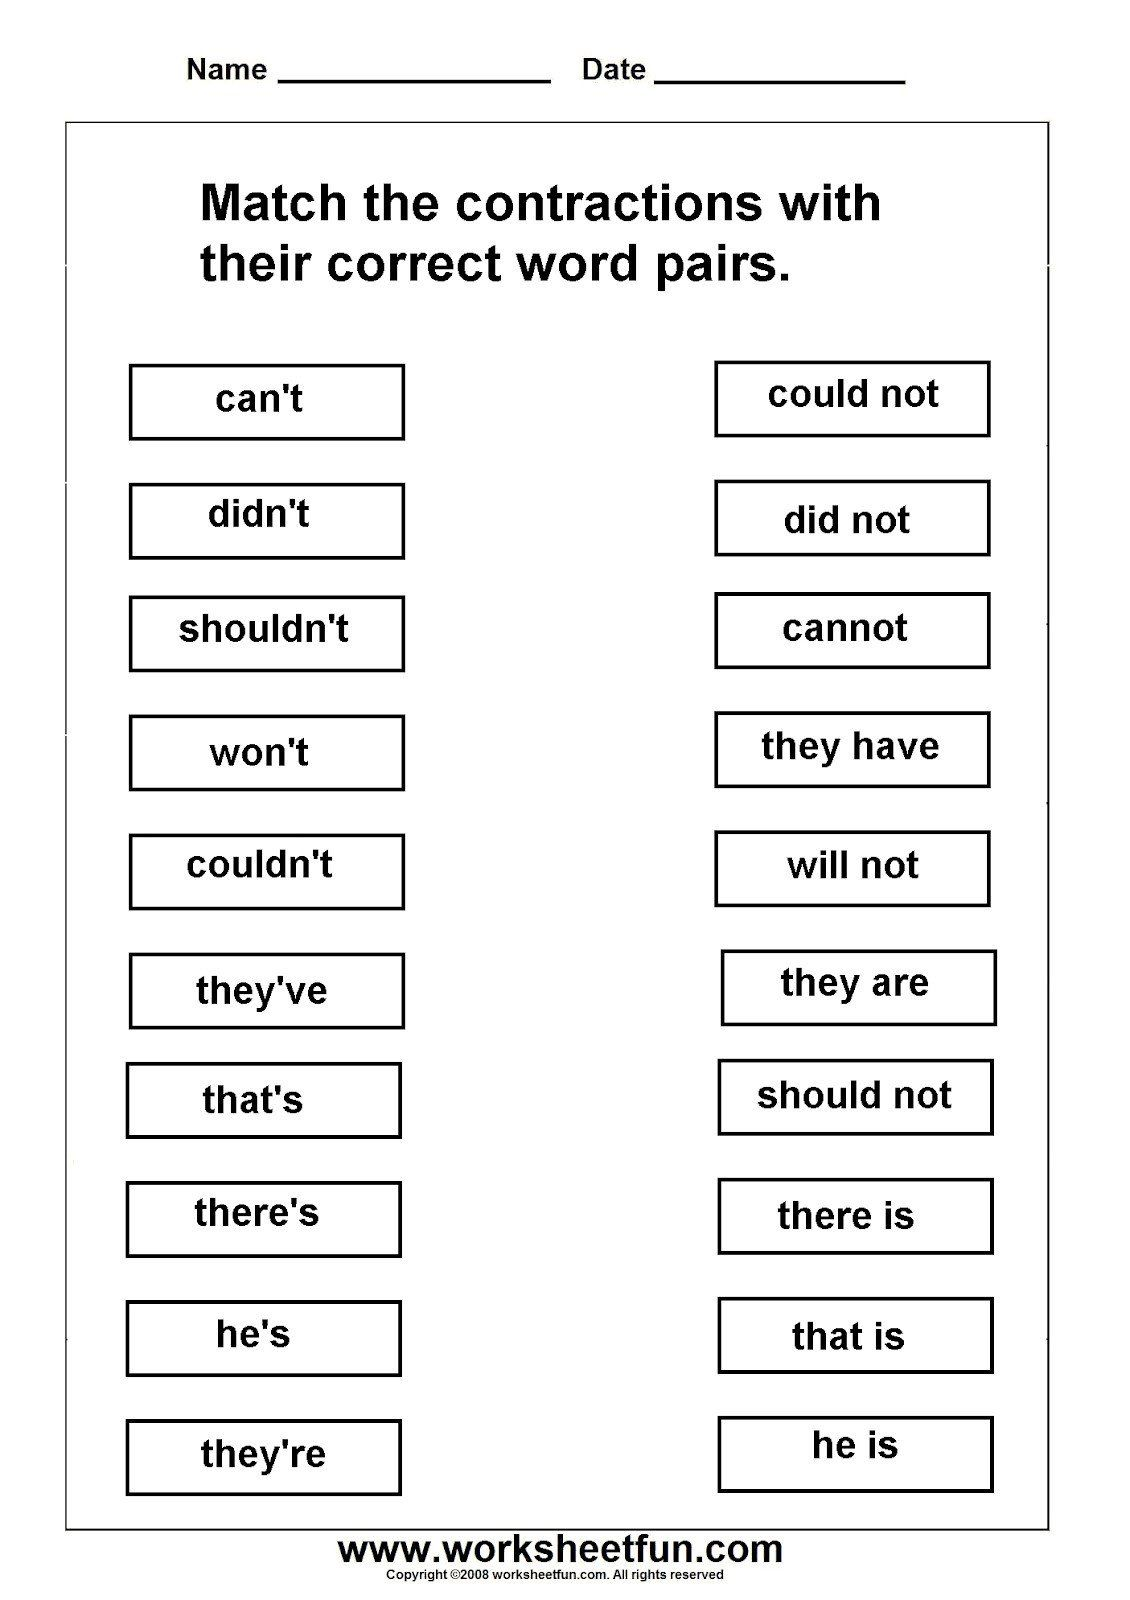 small resolution of Worksheet About Contractions   Printable Worksheets and Activities for  Teachers